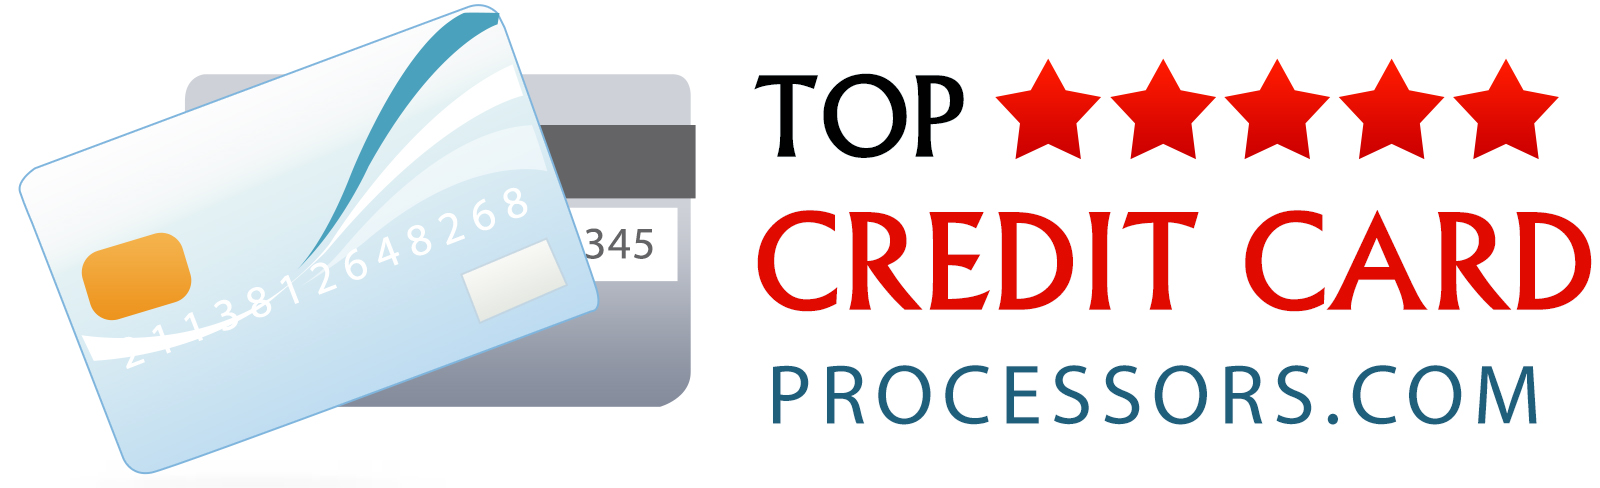 USPAY Group Named Best Merchant Service Provider by topcreditcardprocessors.com for January 2020